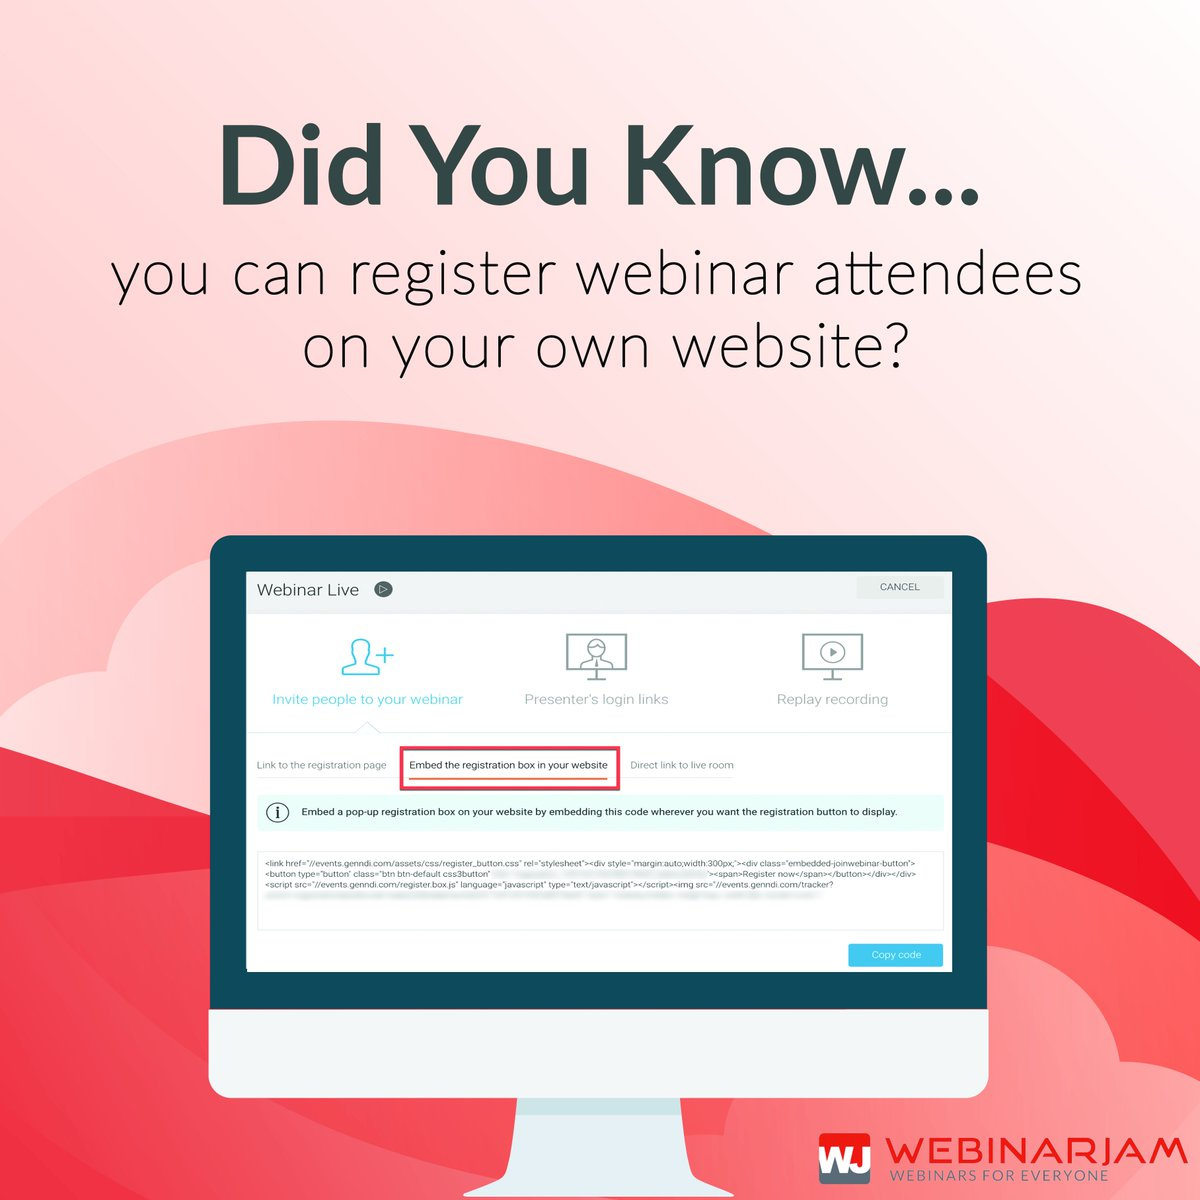 Webinarjam On Twitter Did You Know Webinarjam Offers A Nice Range Of Smart Webinar Registration Pages But If You Prefer To Take Full Control You Also Have The Option Of Embedding Your